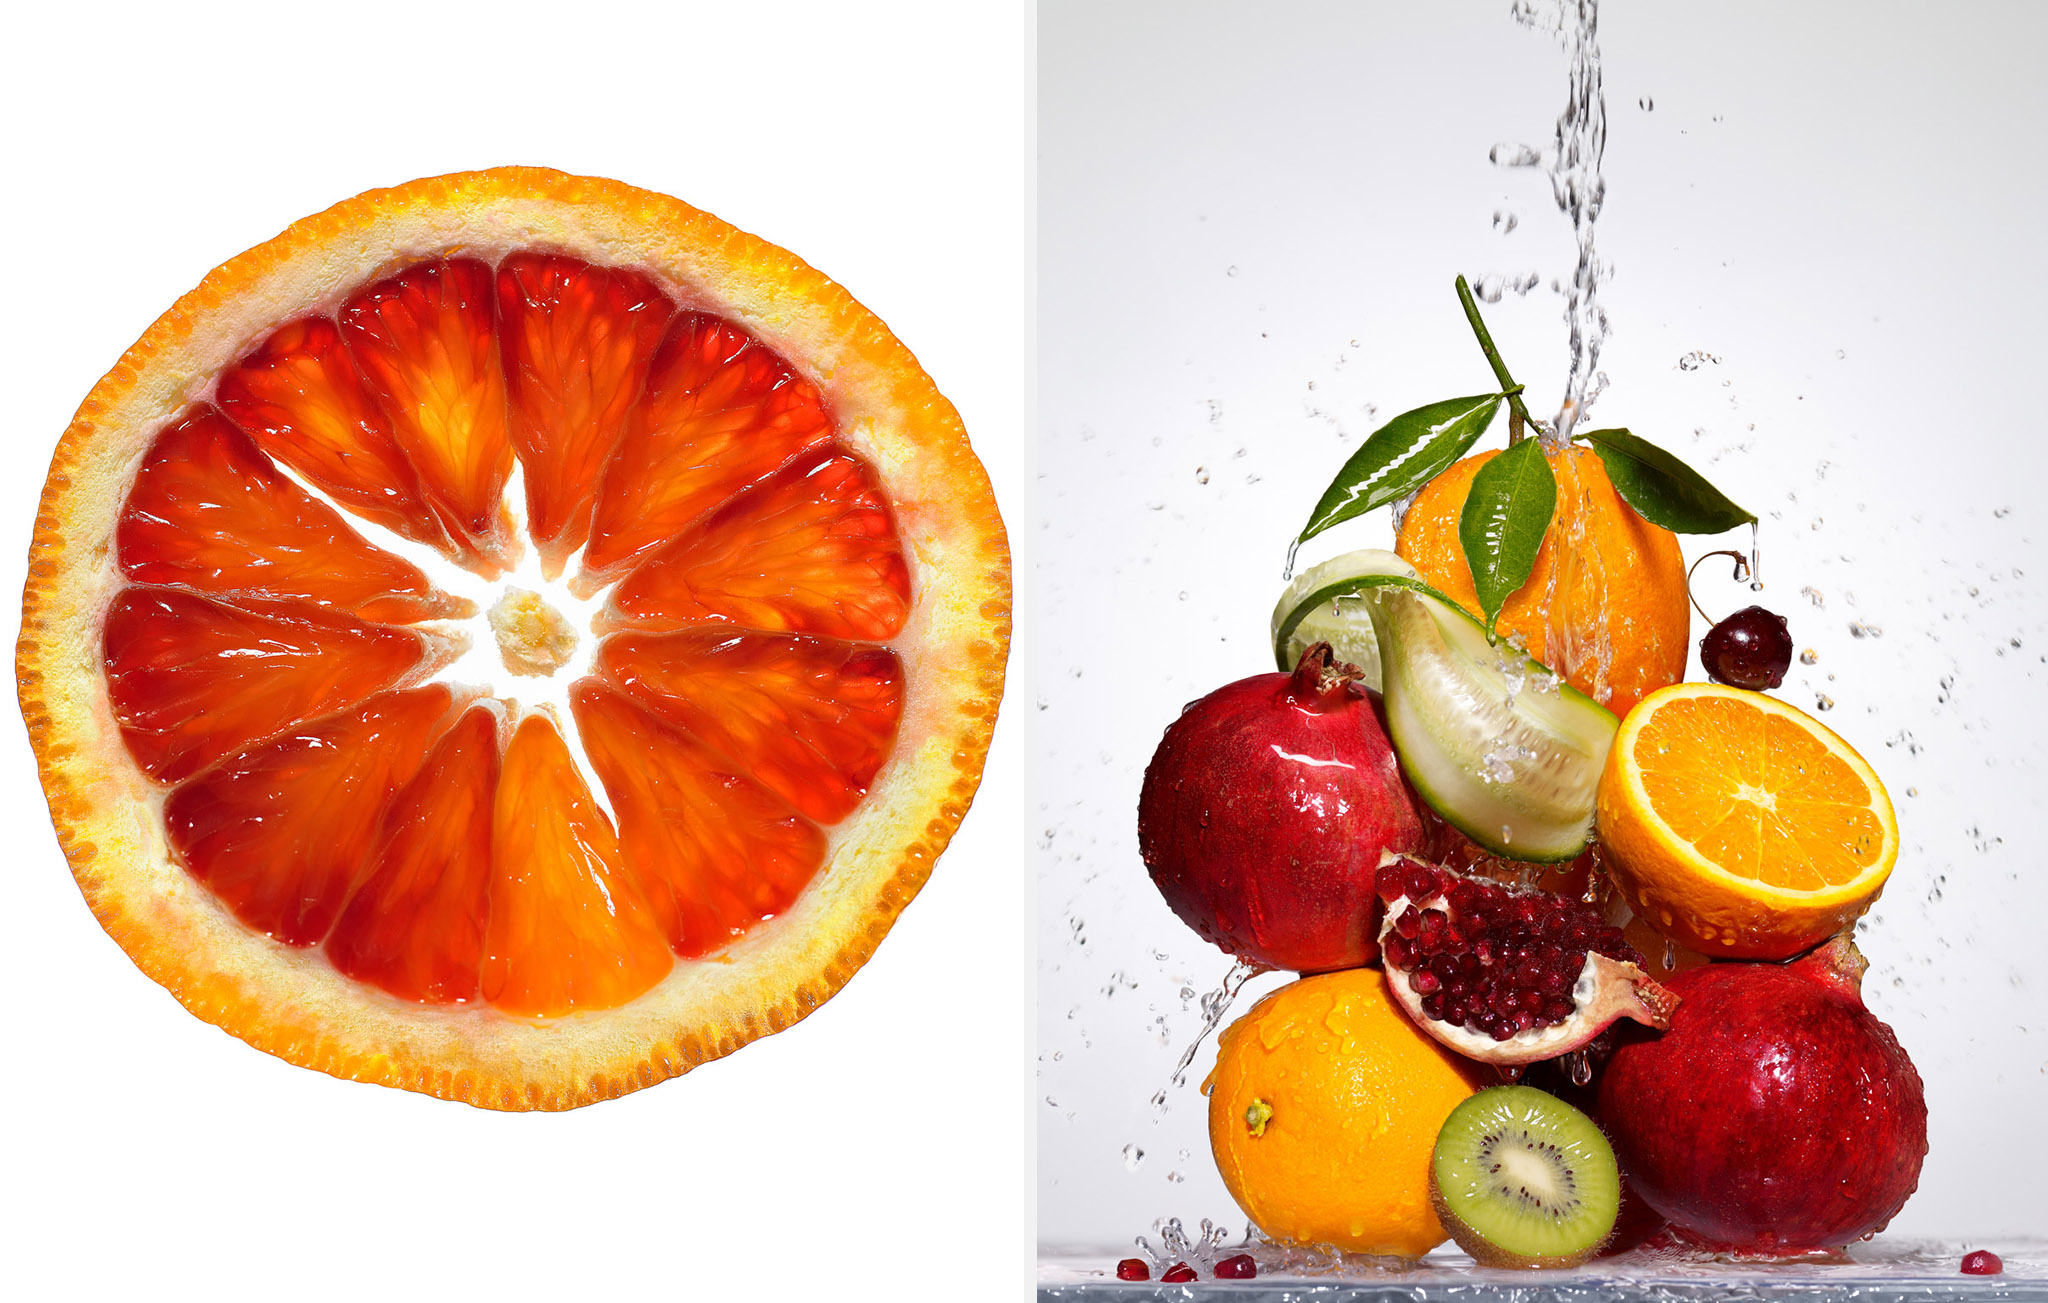 030_blood_oranges_007[f].jpg